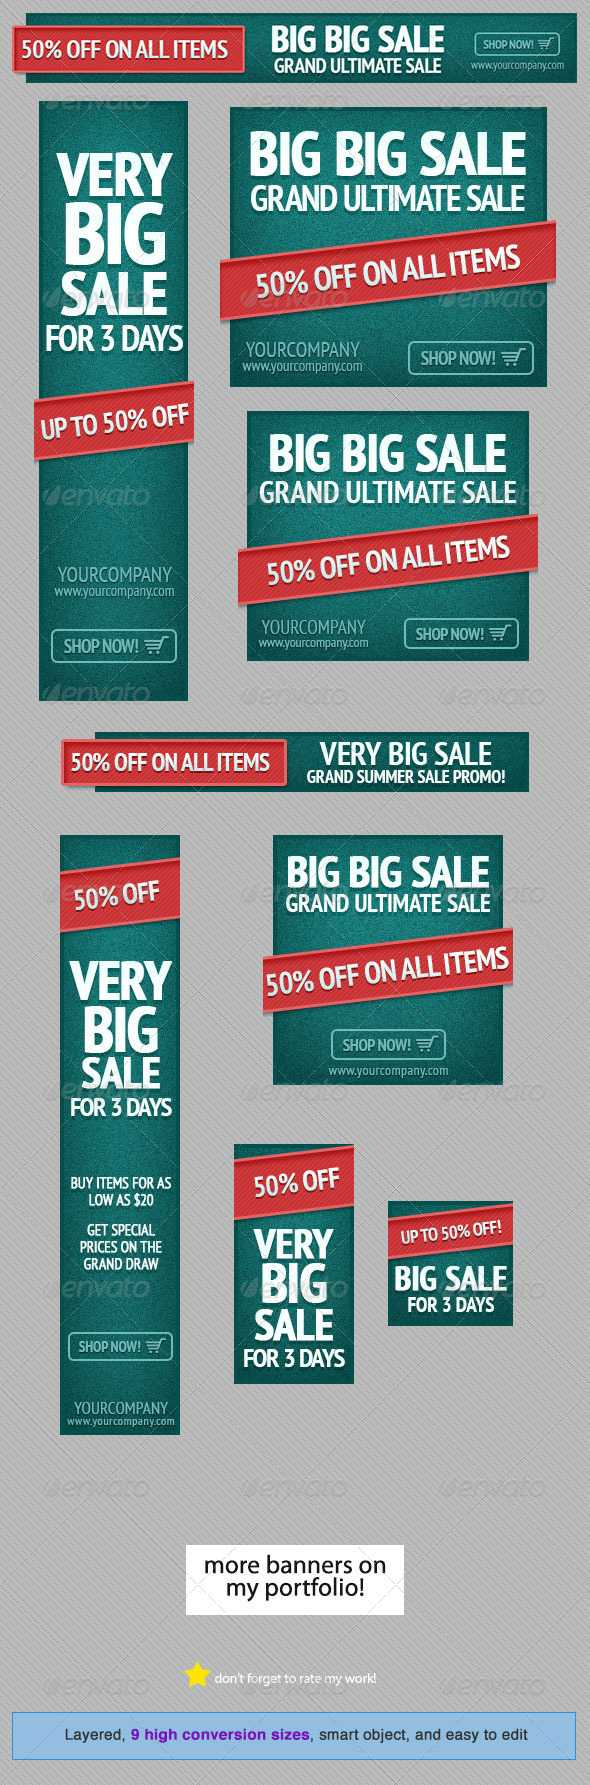 Event Web Banner Graphics, Designs & Templates From Graphicriver Pertaining To Event Banner Template